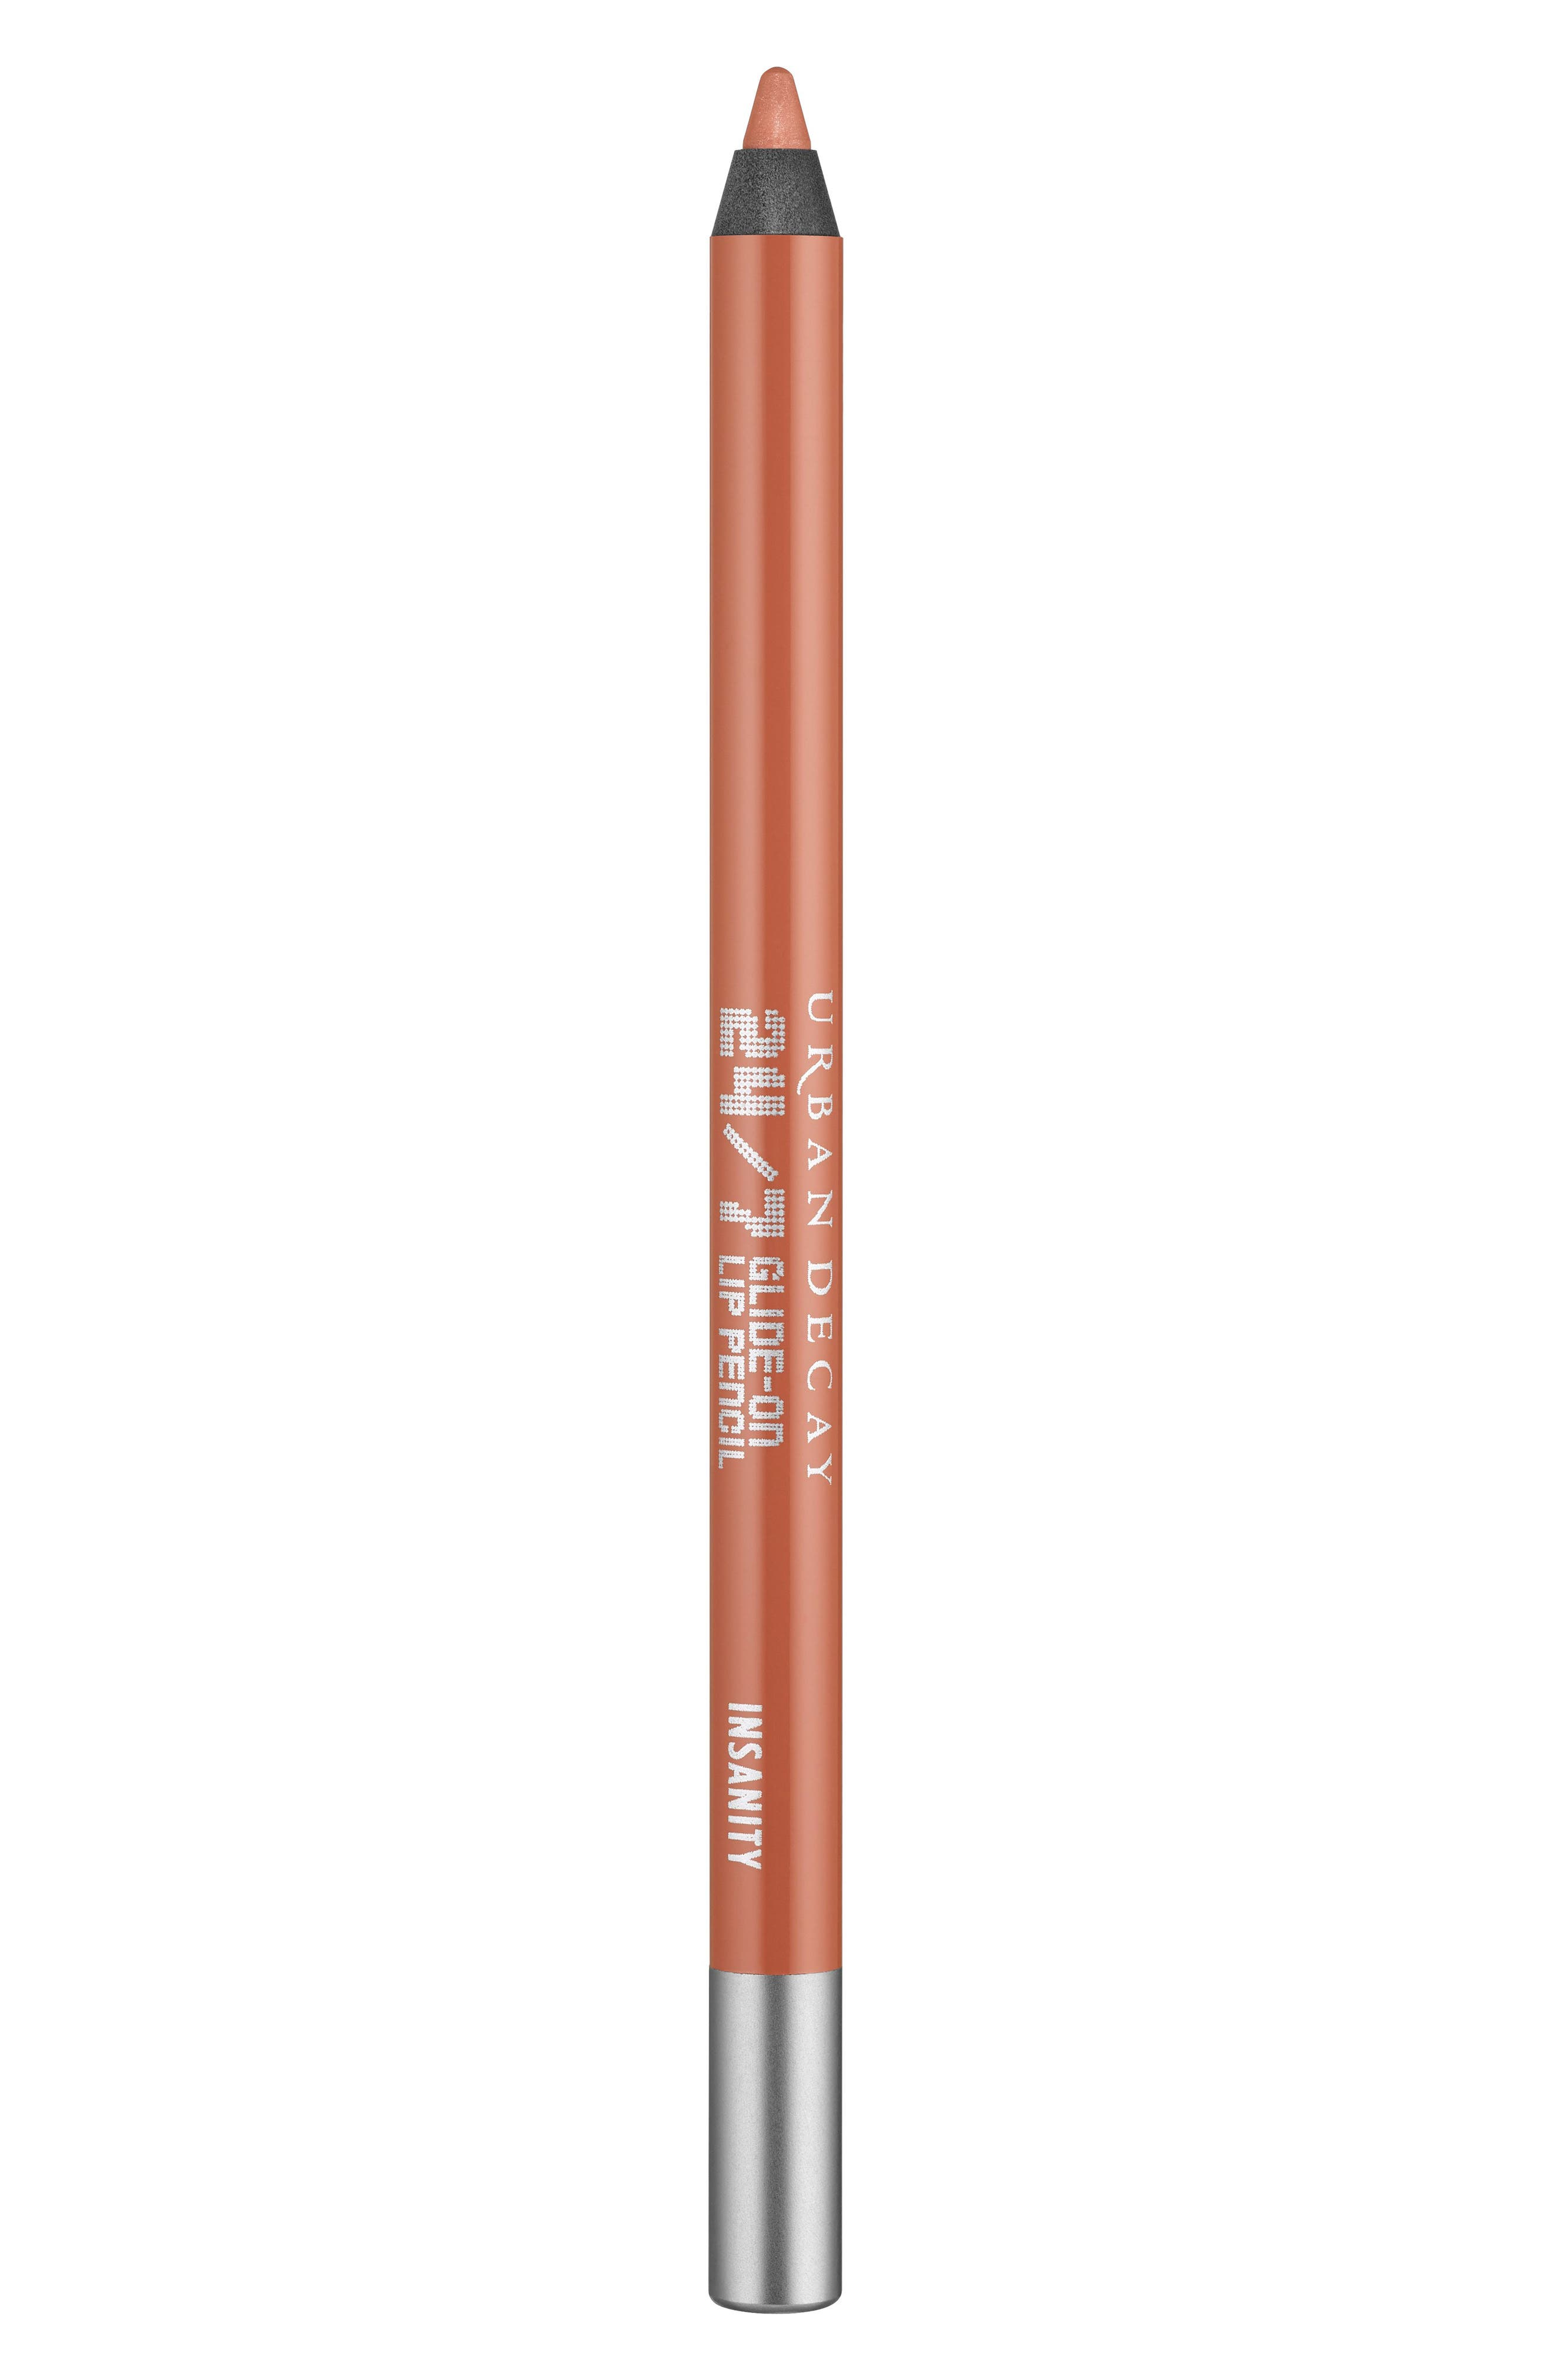 What it is: A long-lasting, waterproof lipliner that glides on smoothly to prime and define, for long-lasting color and clean lines. What it does: The formula stays put throughout the day while priming lips for lipstick or gloss, grabbing onto color to help it last. Its creamy formula never feels dry or cakey thanks to added vitamin E, jojoba oil and cottonseed oil that nourish your lips every time you apply. Shade-matched barrels make it easy to